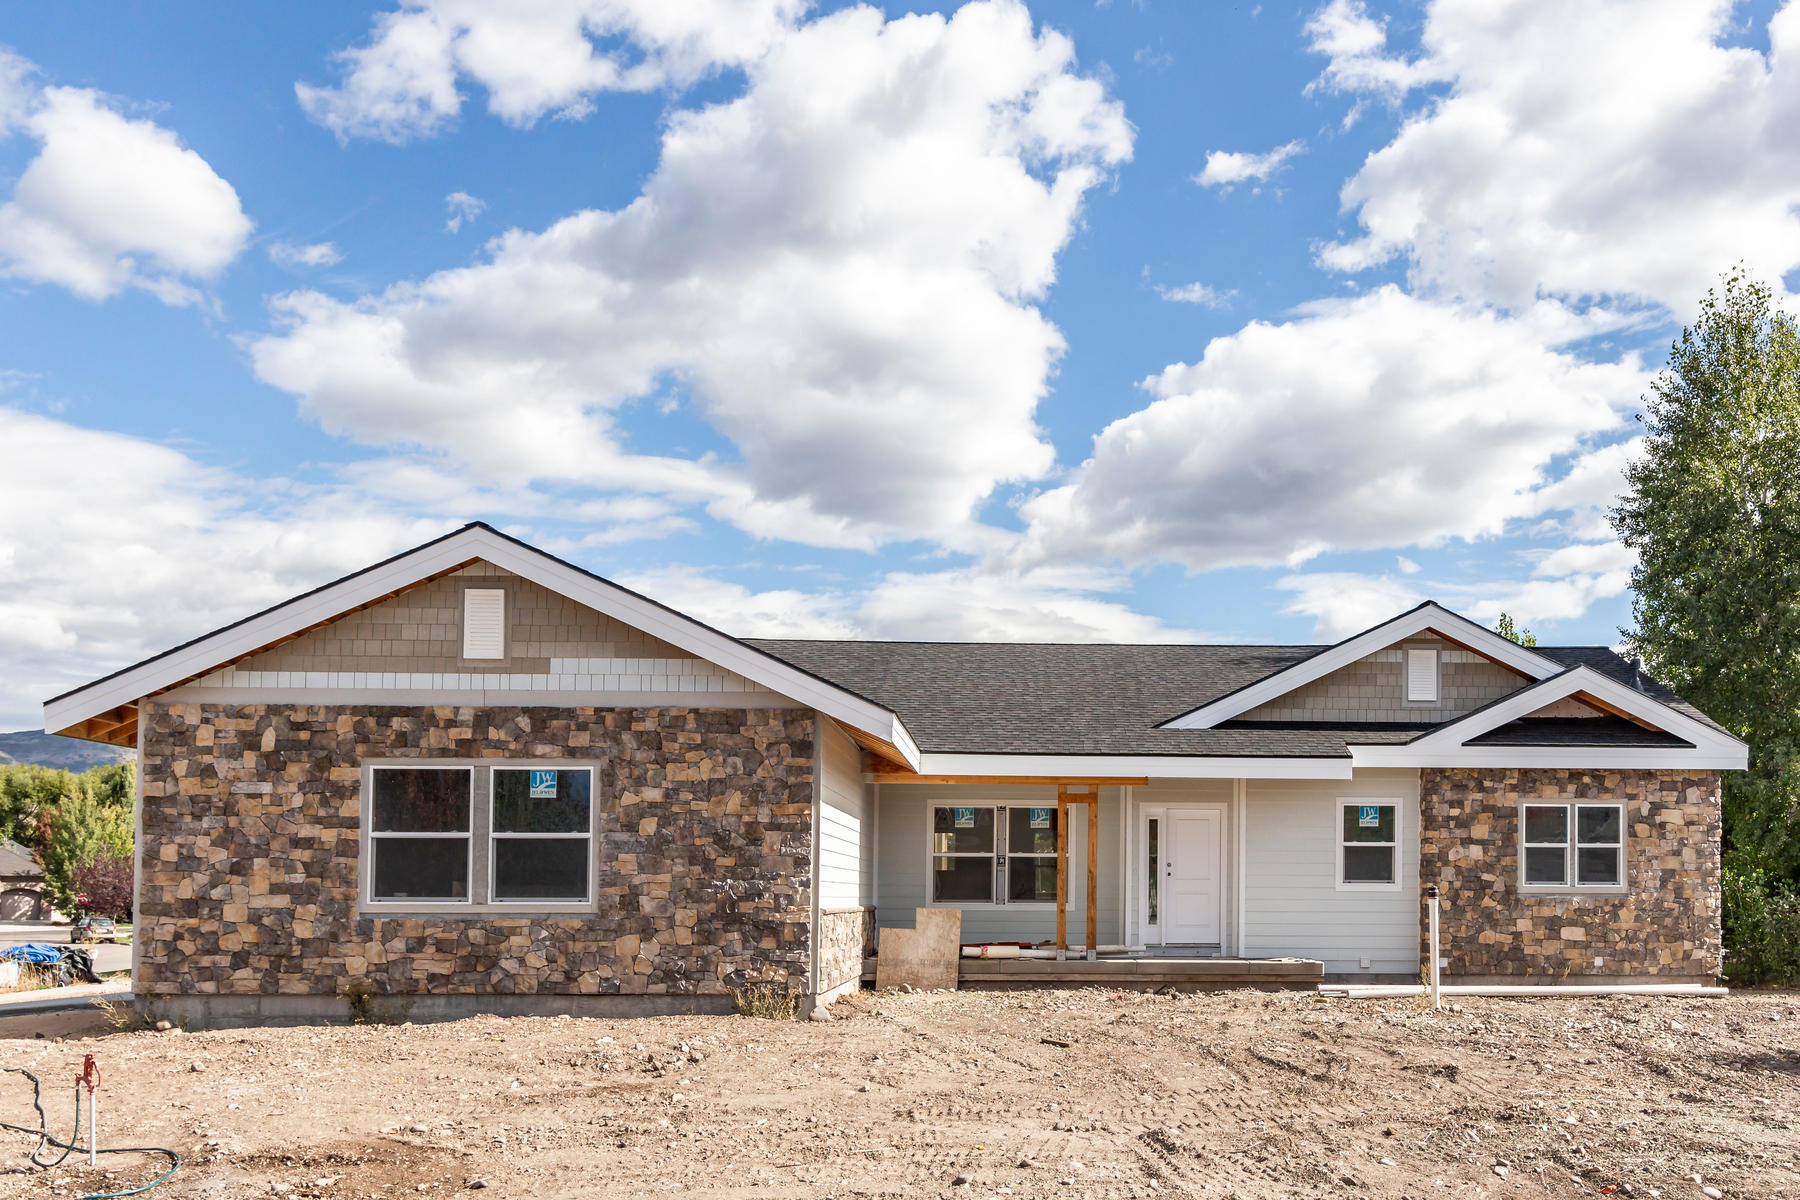 Single Family Homes for Sale at Brand New Home on a Cul-de-sac 1151 East Millers Ct, Heber, Utah 84032 United States